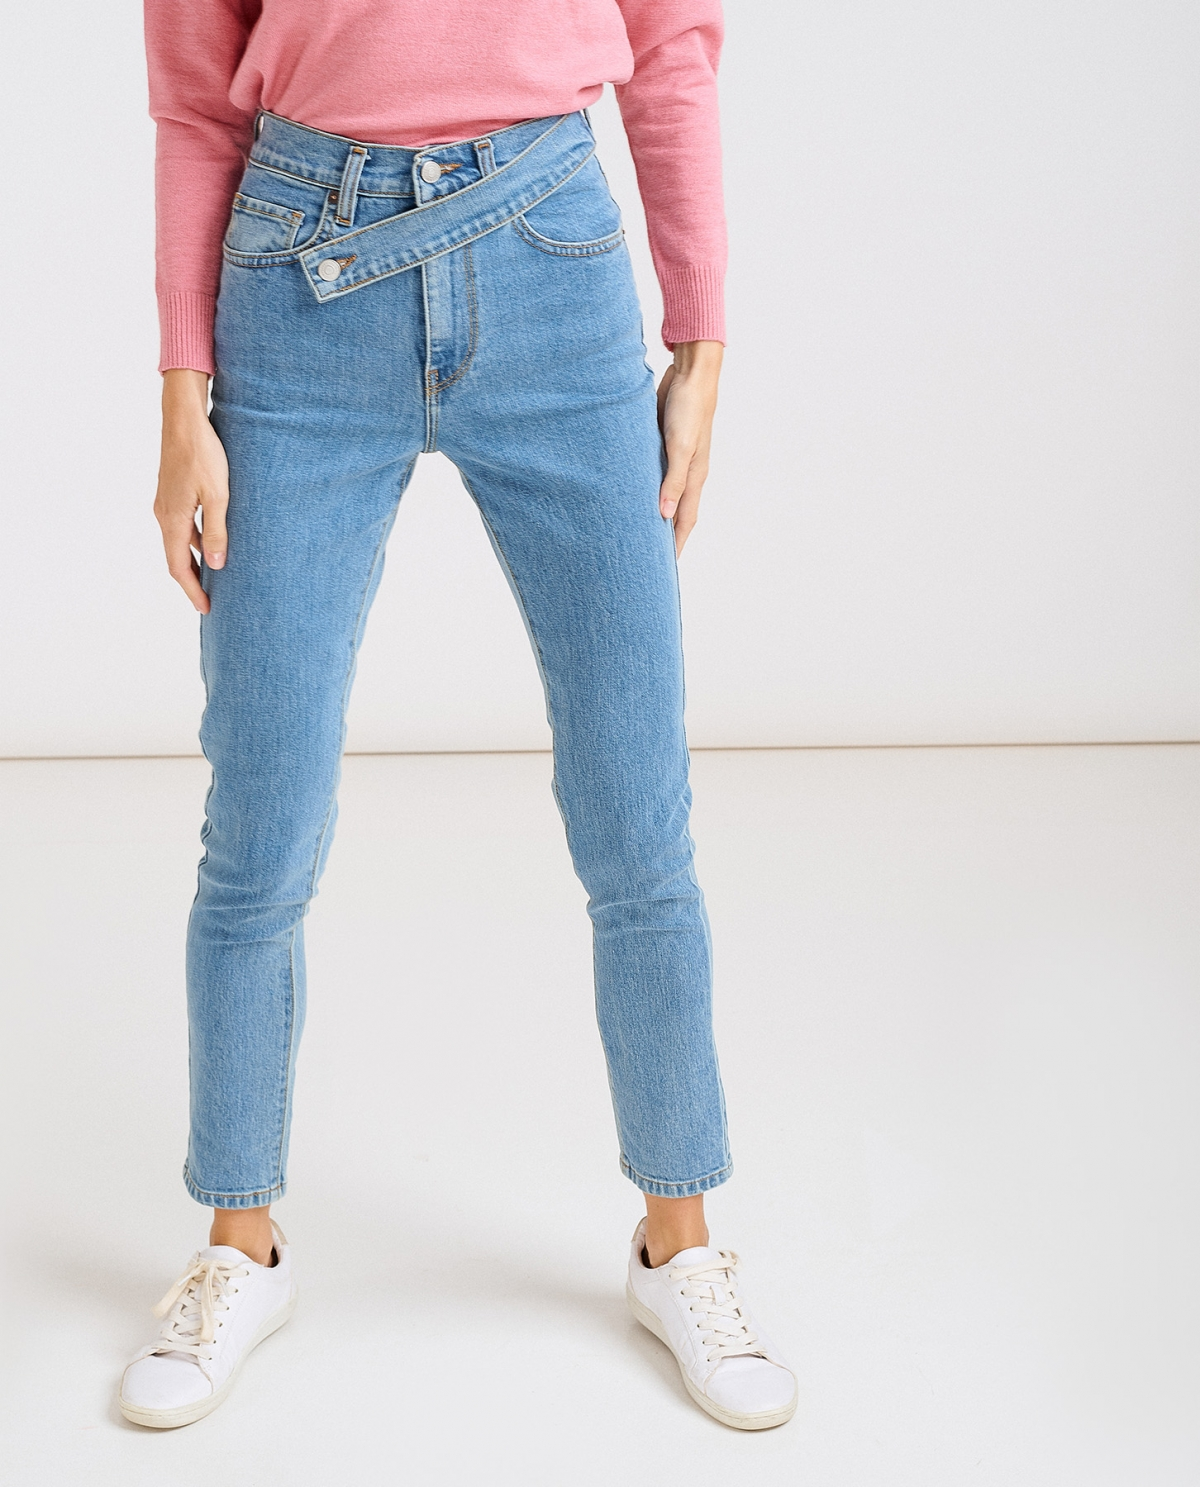 Kate Light Reworked Jeans